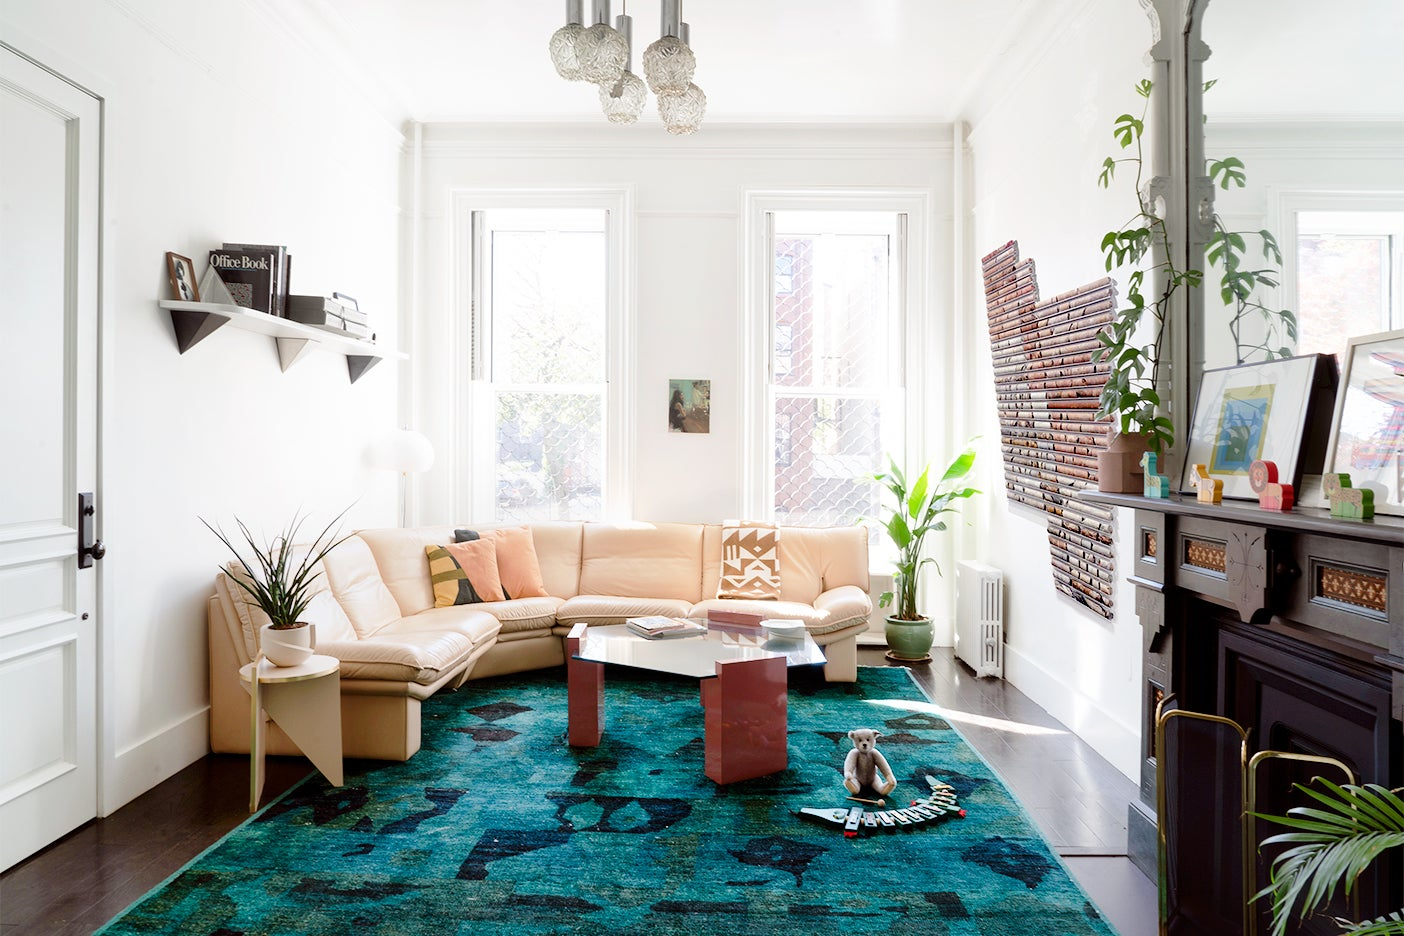 Living room with green rug and beige leather sectional